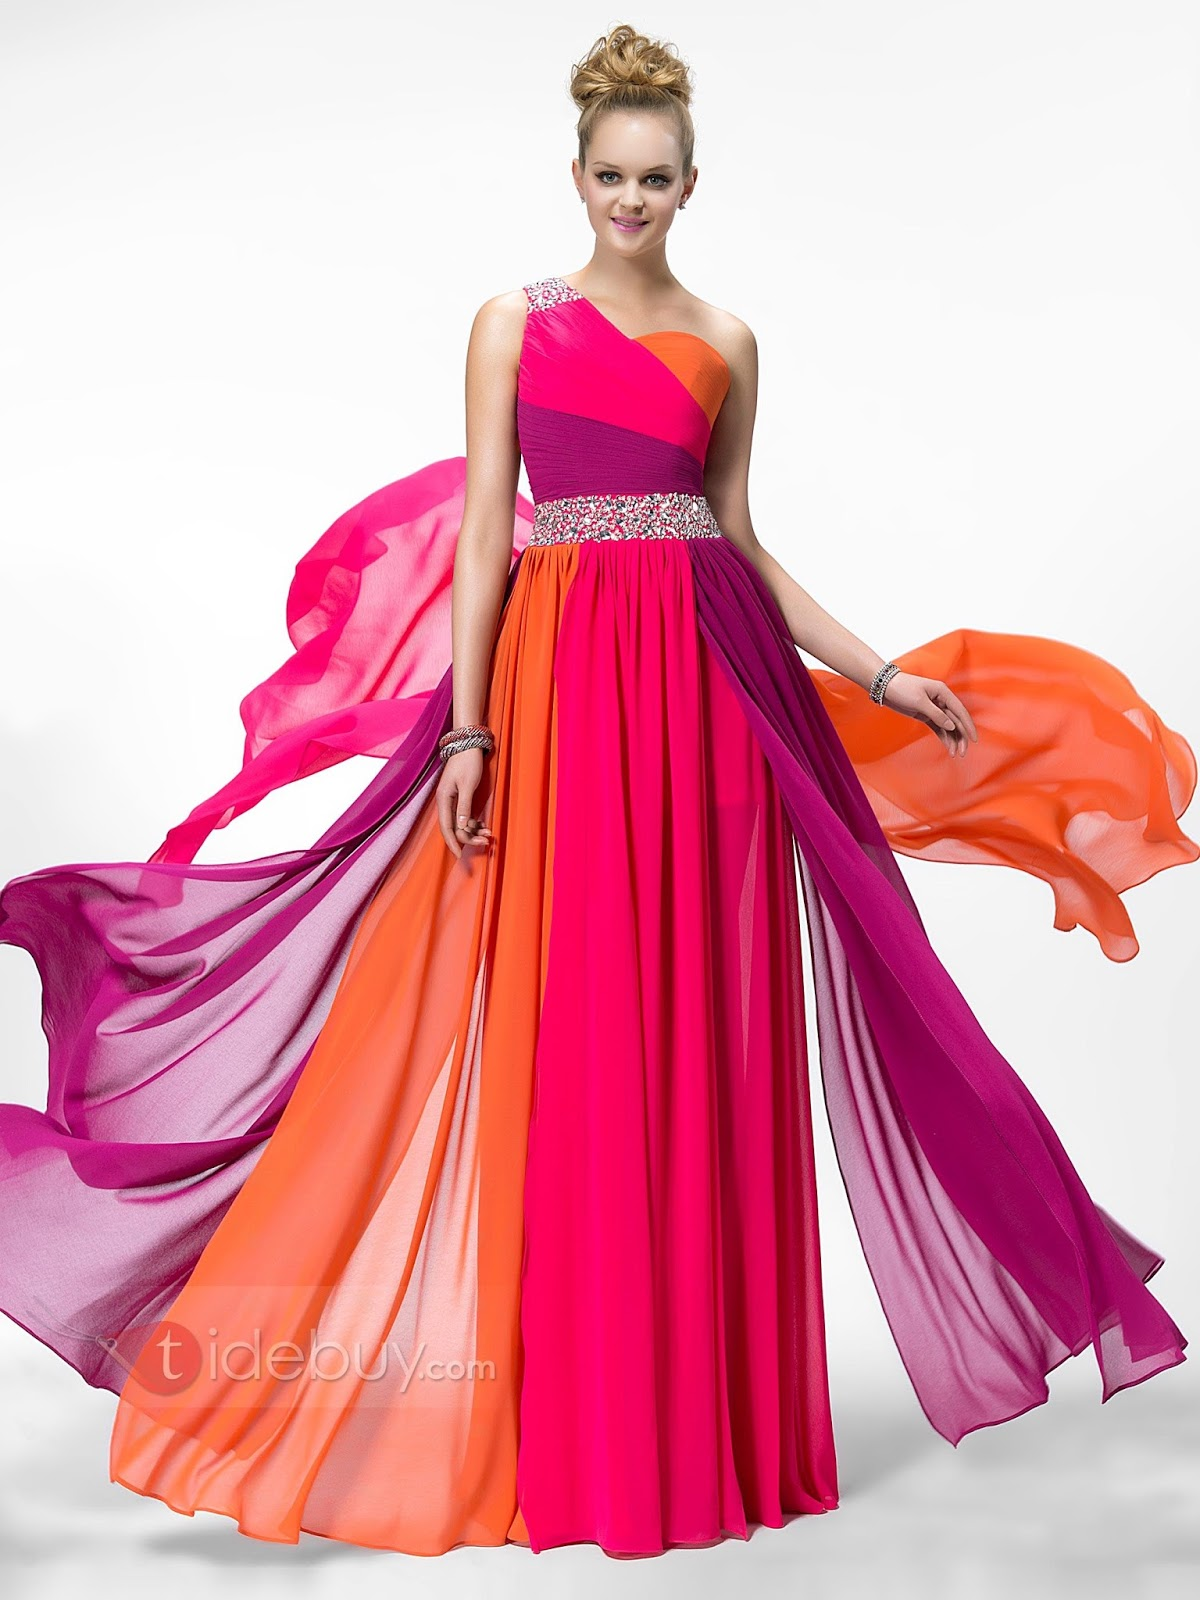 http://www.tidebuy.com/product/Colourful-Chiffon-One-Shoulder-Beading-Floor-Length-Prom-Dress-10875903.html